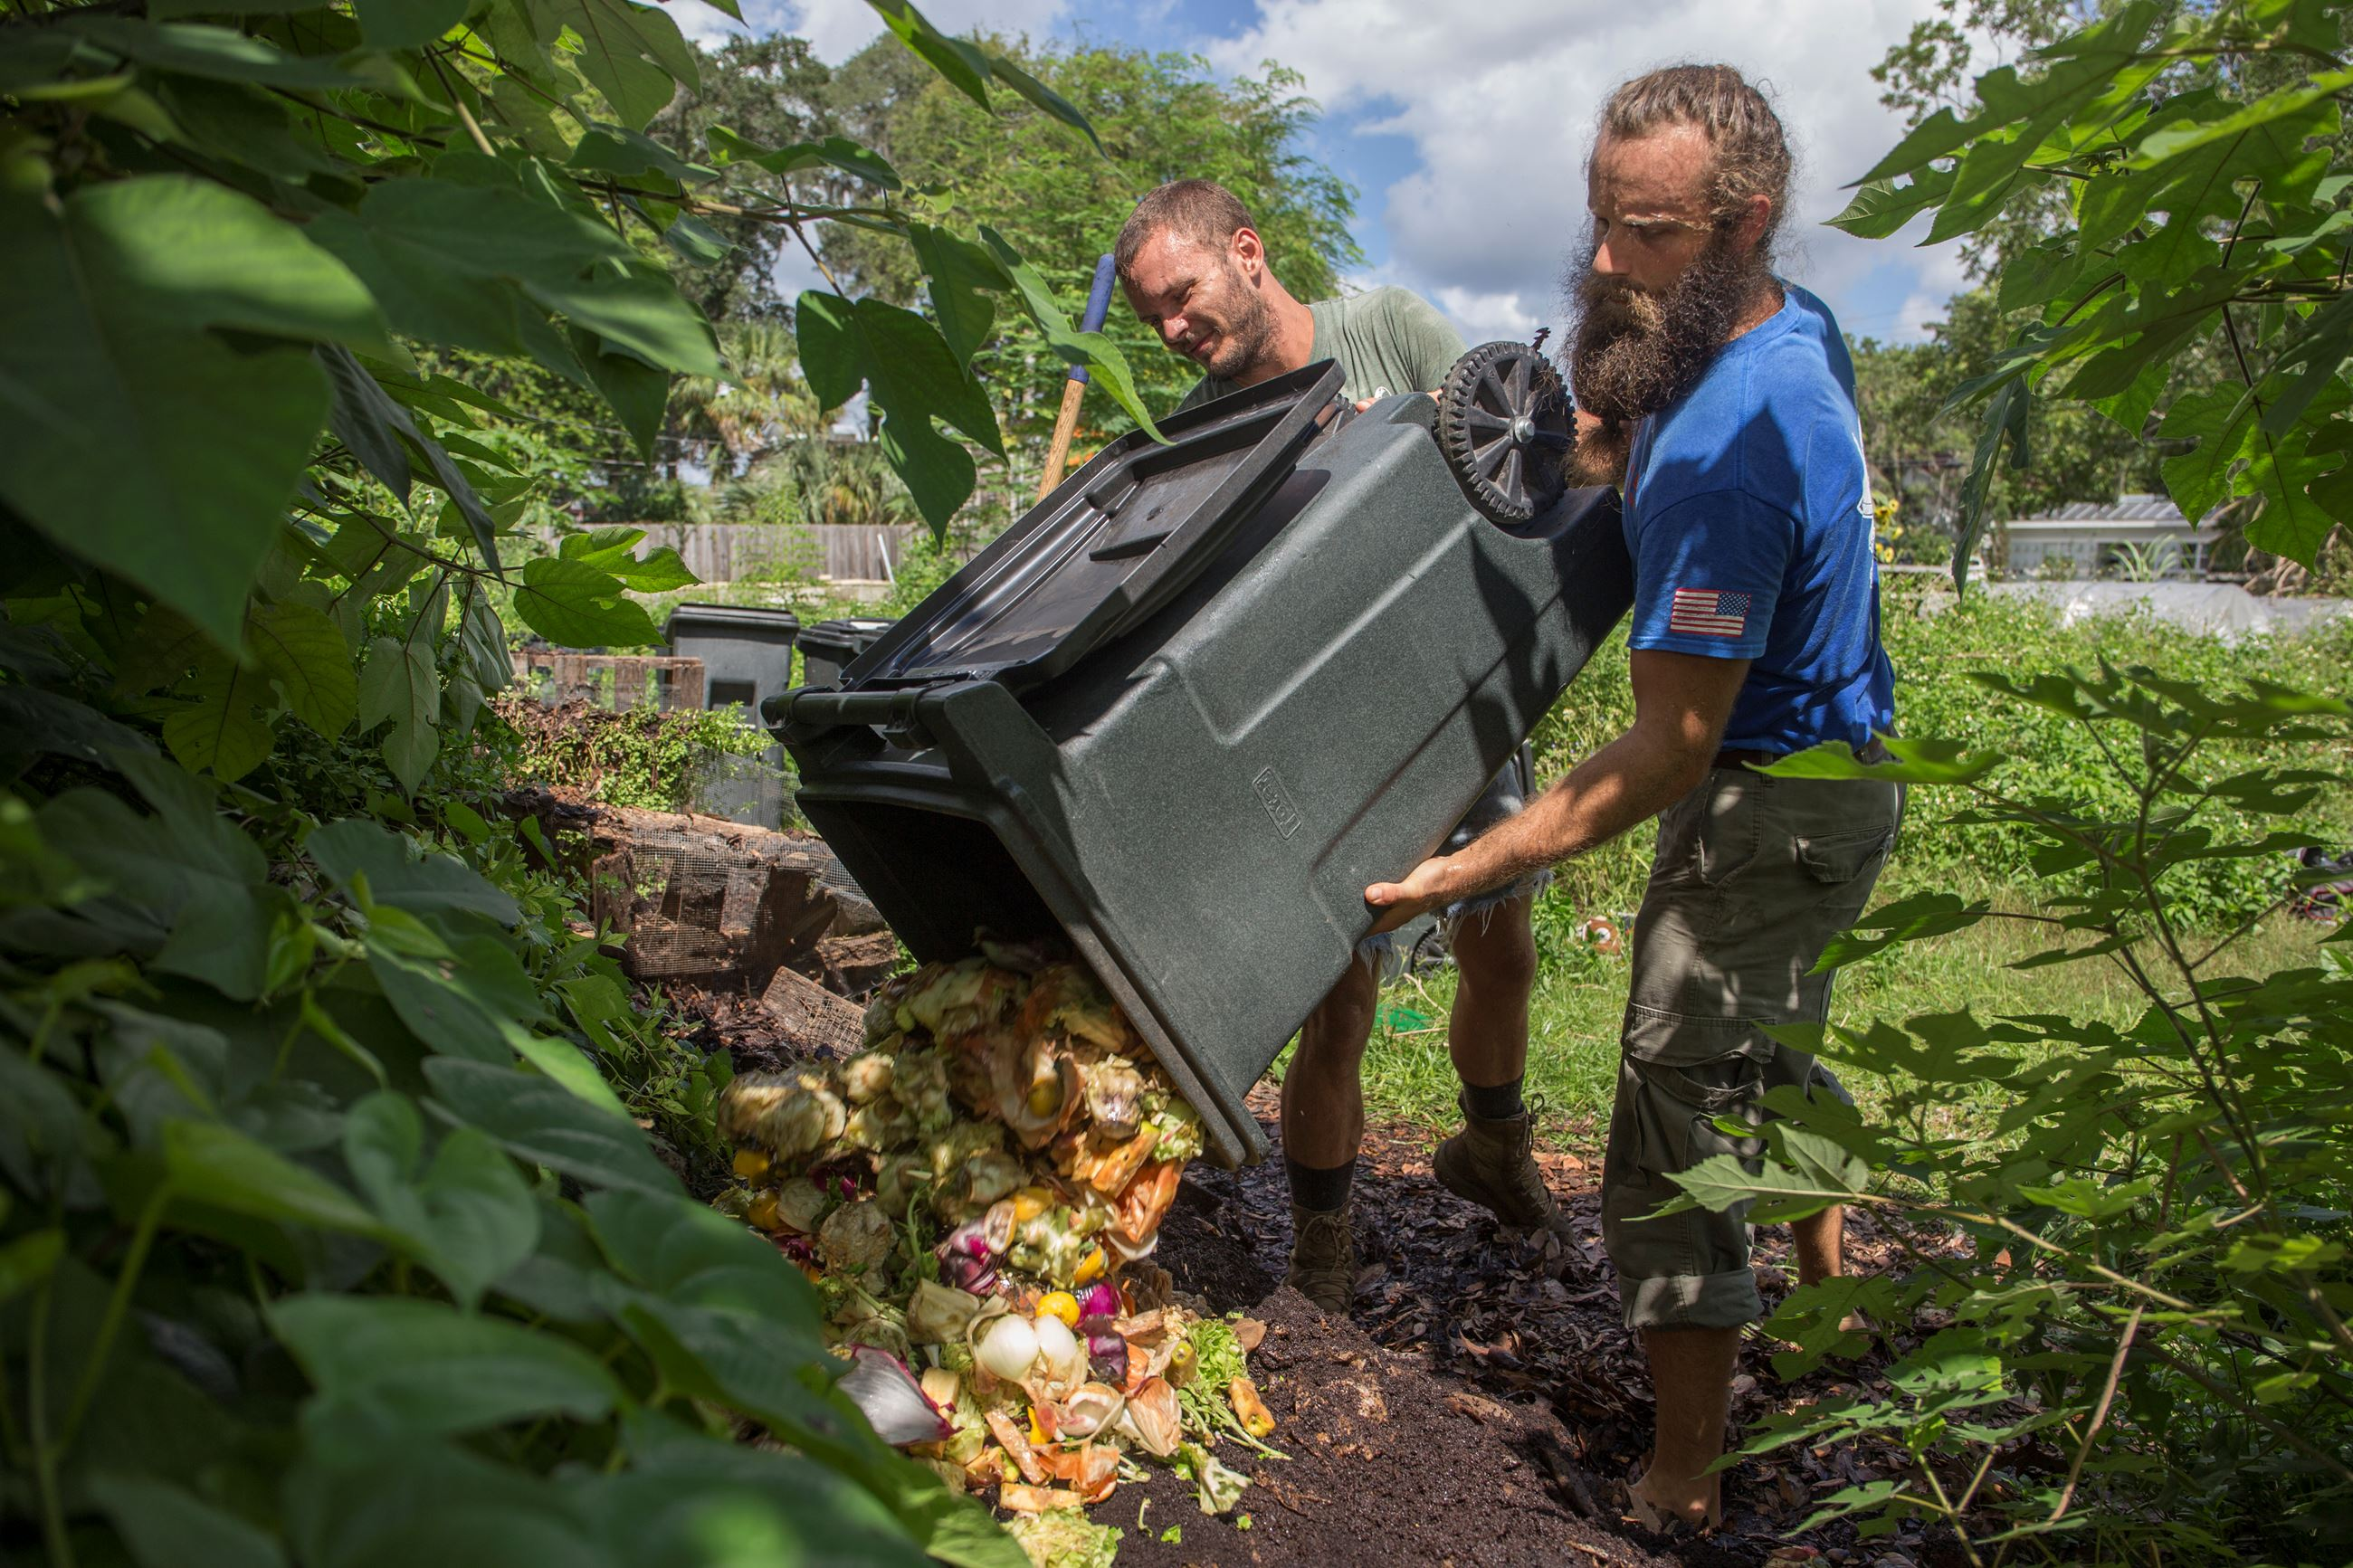 Food waste being dumped for composting_UF.IFAS_Camila Guillen